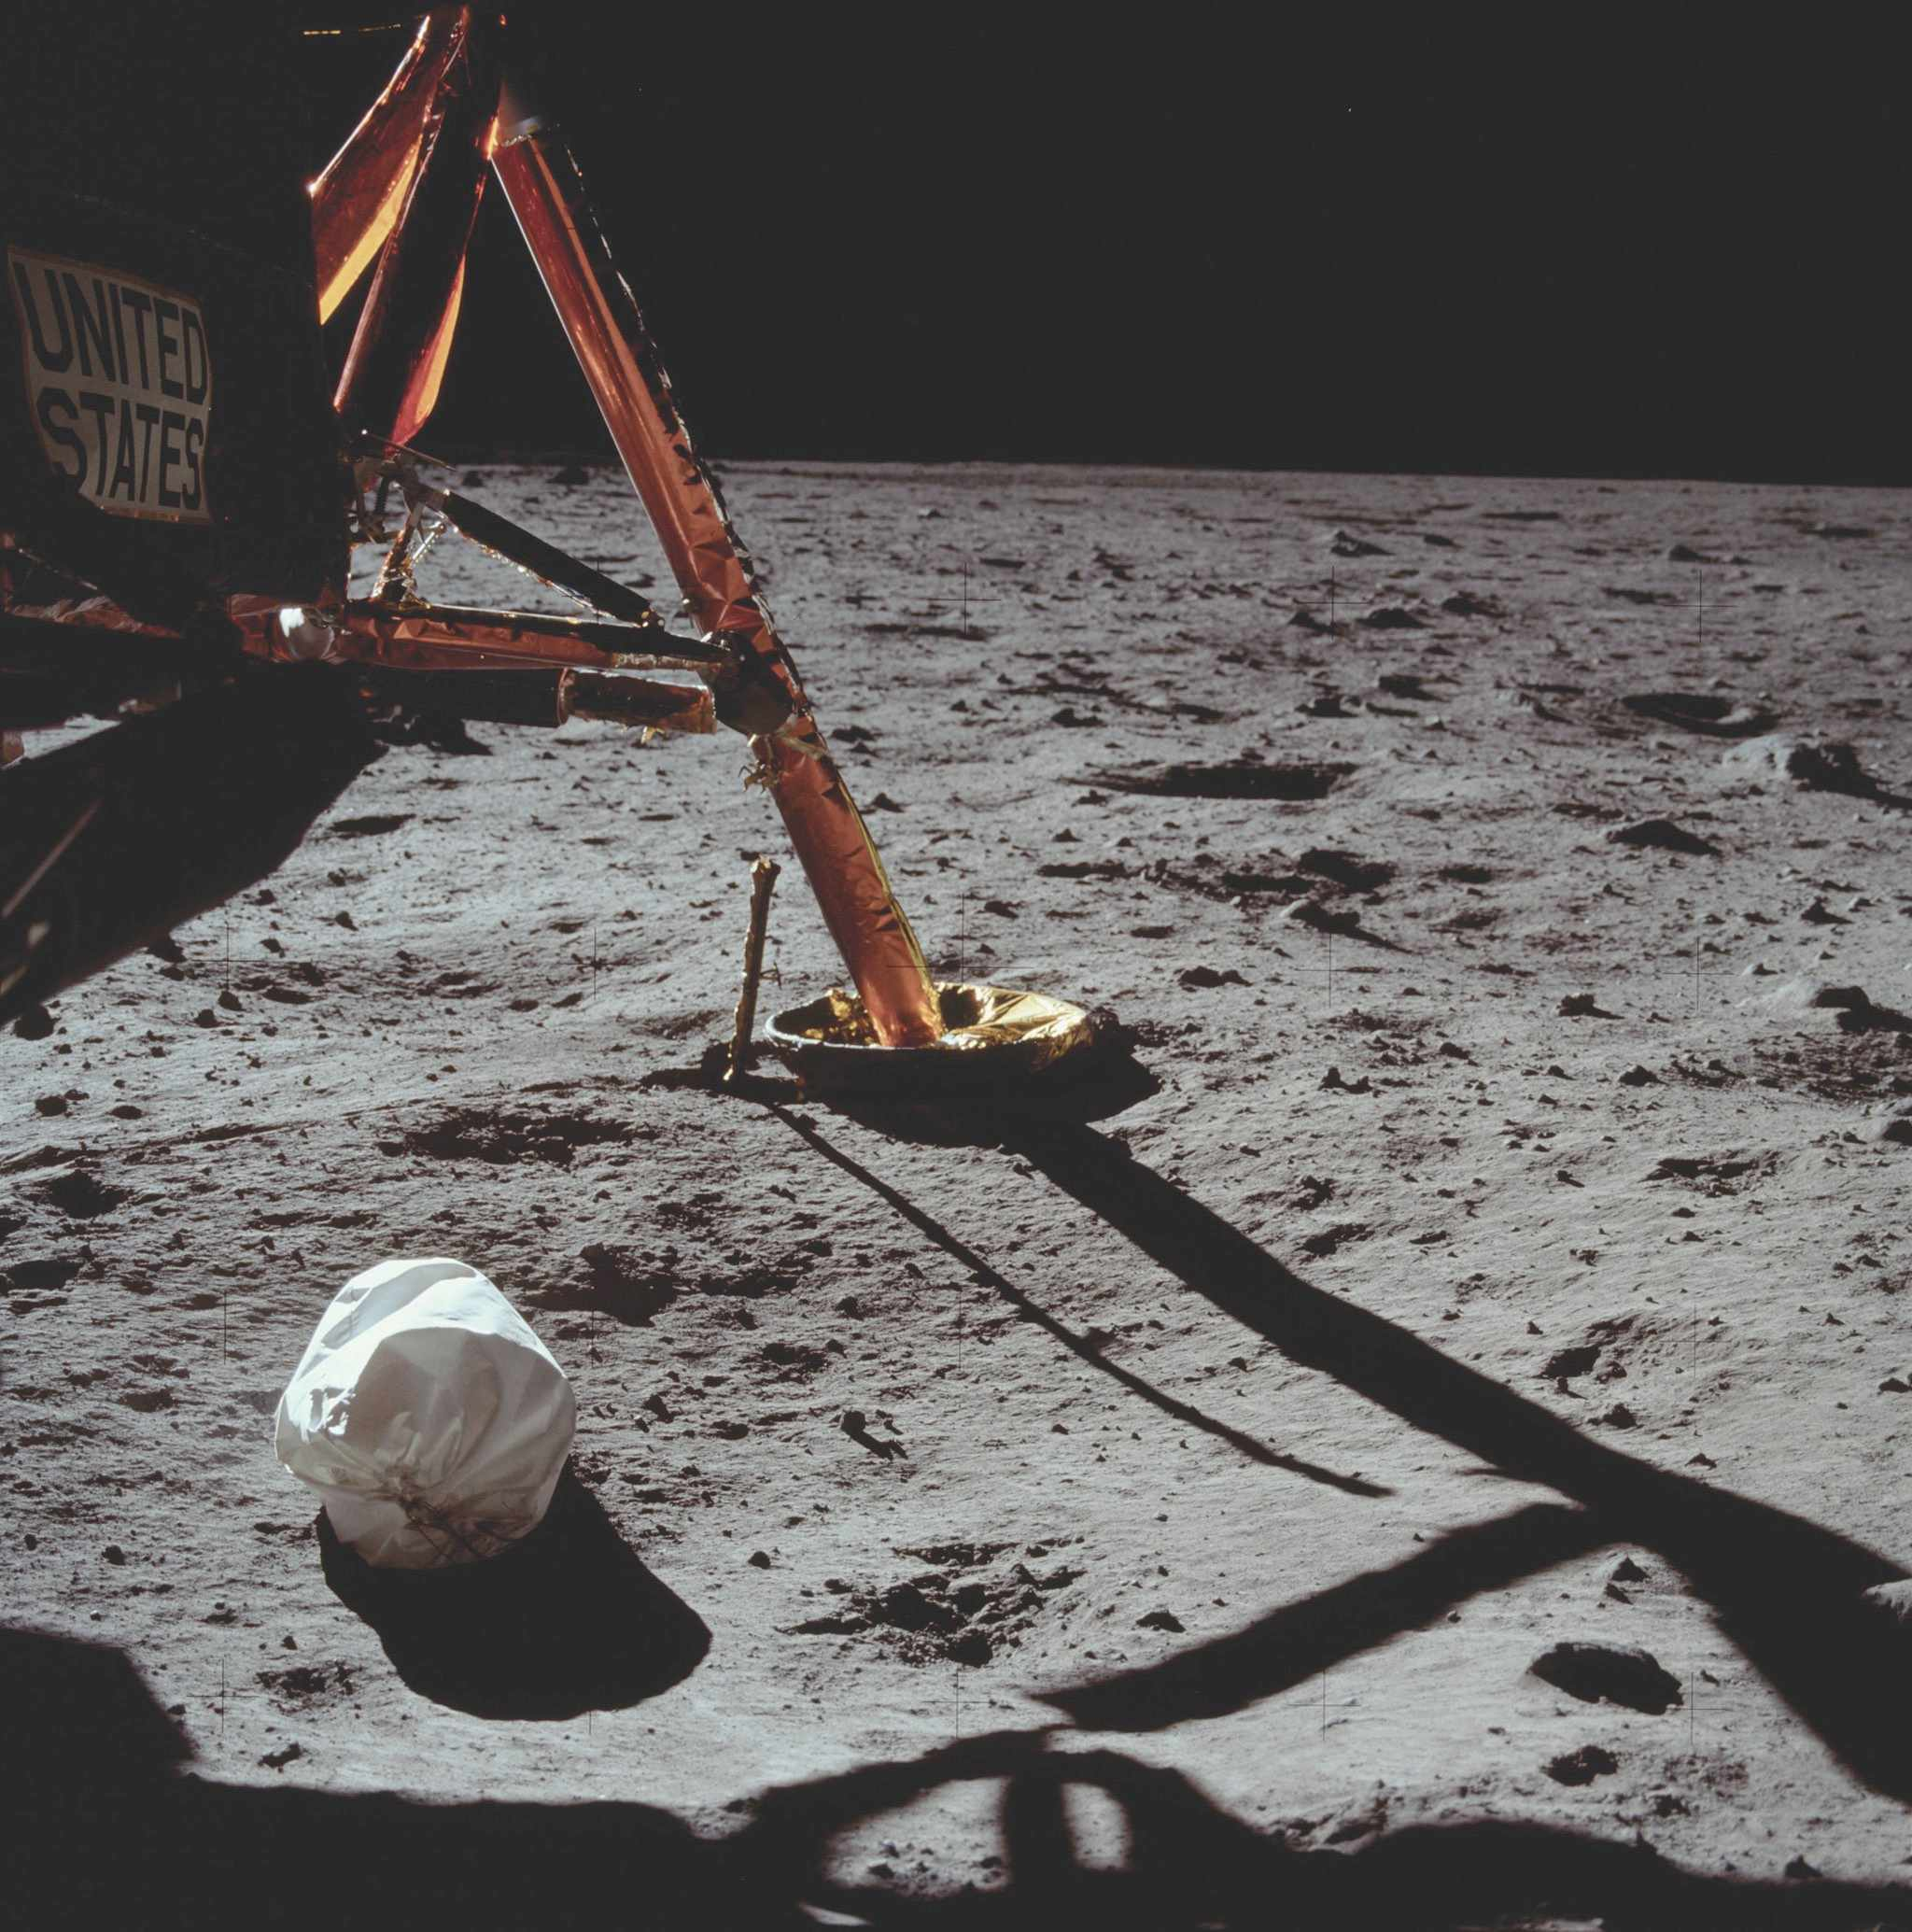 Armstrong's first photograph on the lunar surface, taken 23 minutes into the moonwalk, shows Eagle's footpad and strut support, plus a white jettison bag full of rubbish from the lunar module. The bag was left on the surface to free up space in the cramped cabin. © NASA/JPL